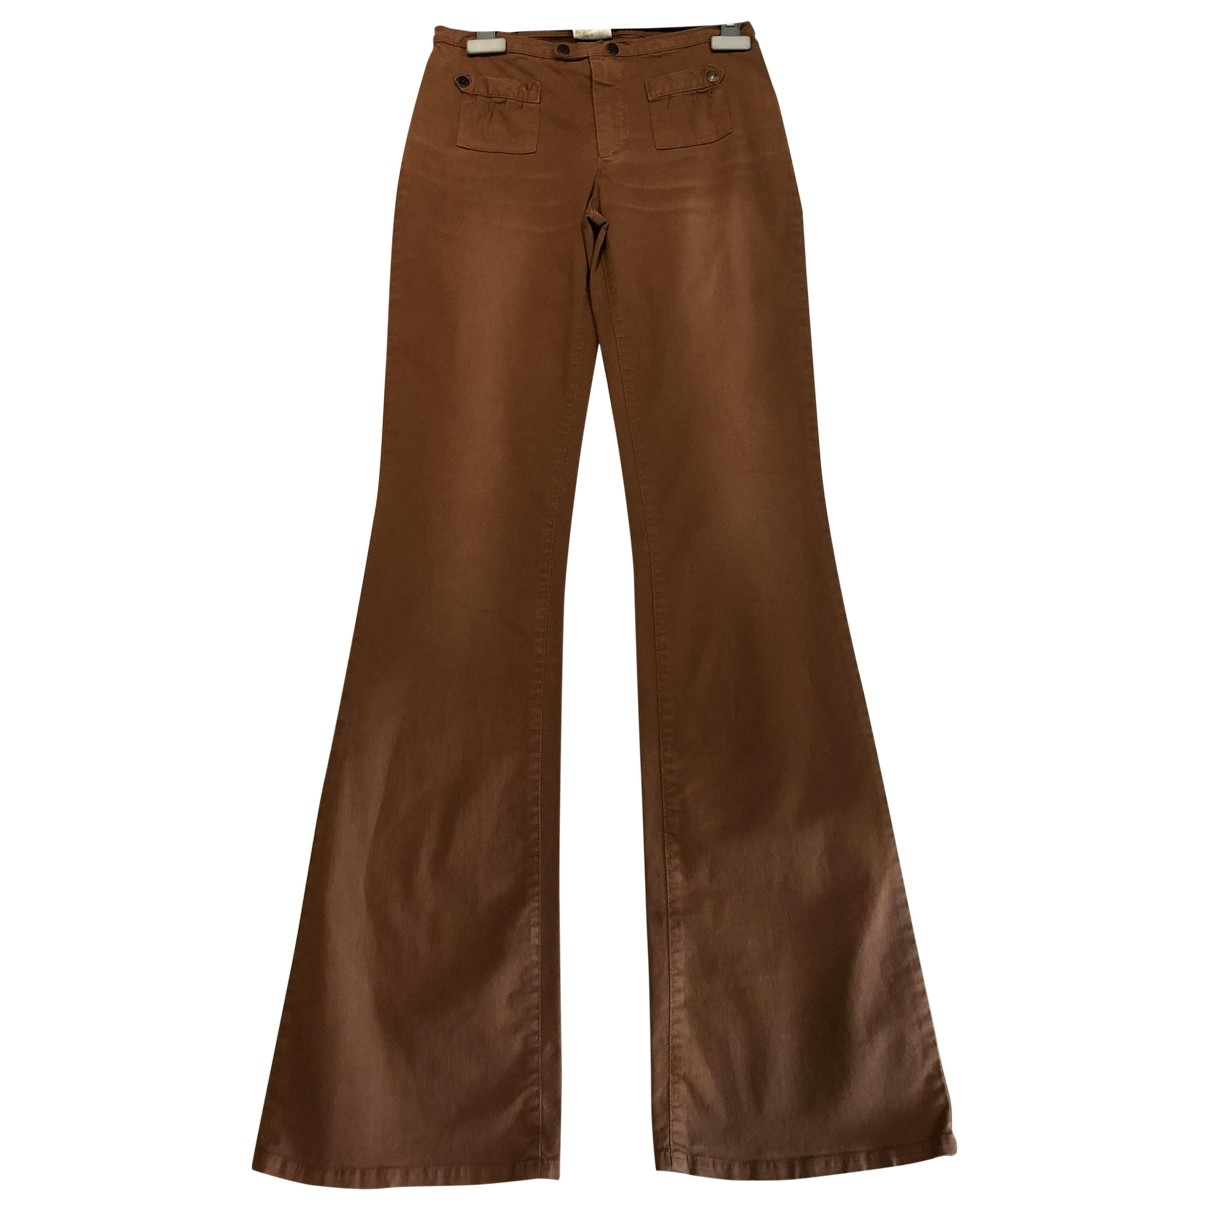 D&g \N Brown Cotton Trousers for Women 42 IT